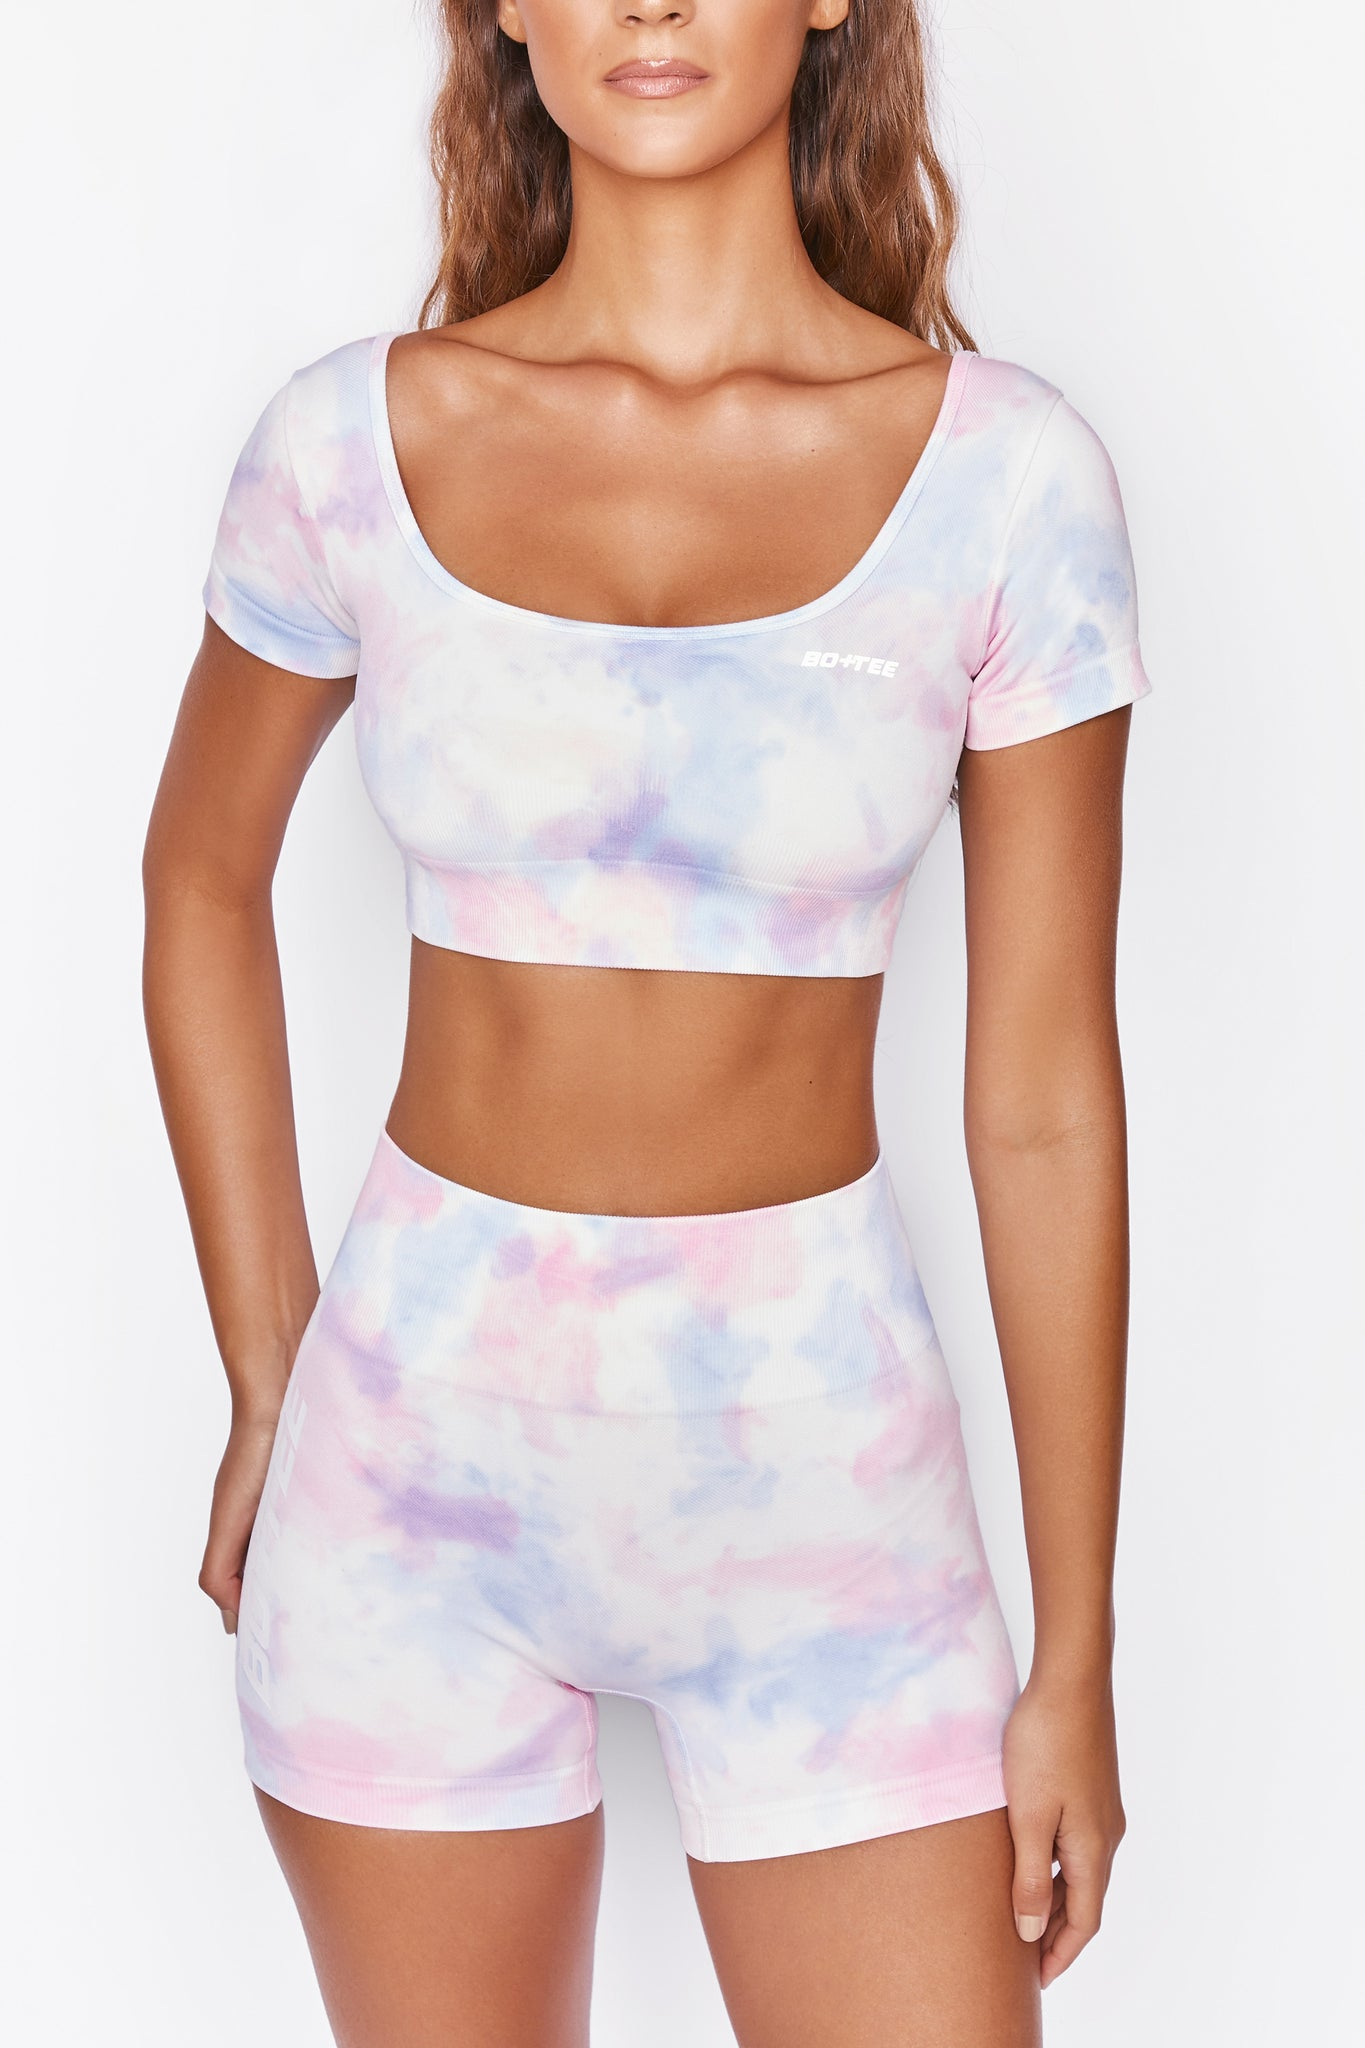 Tie Dye scoop neck crop top with short sleeves and ribbed underband. Image 6 of 6.